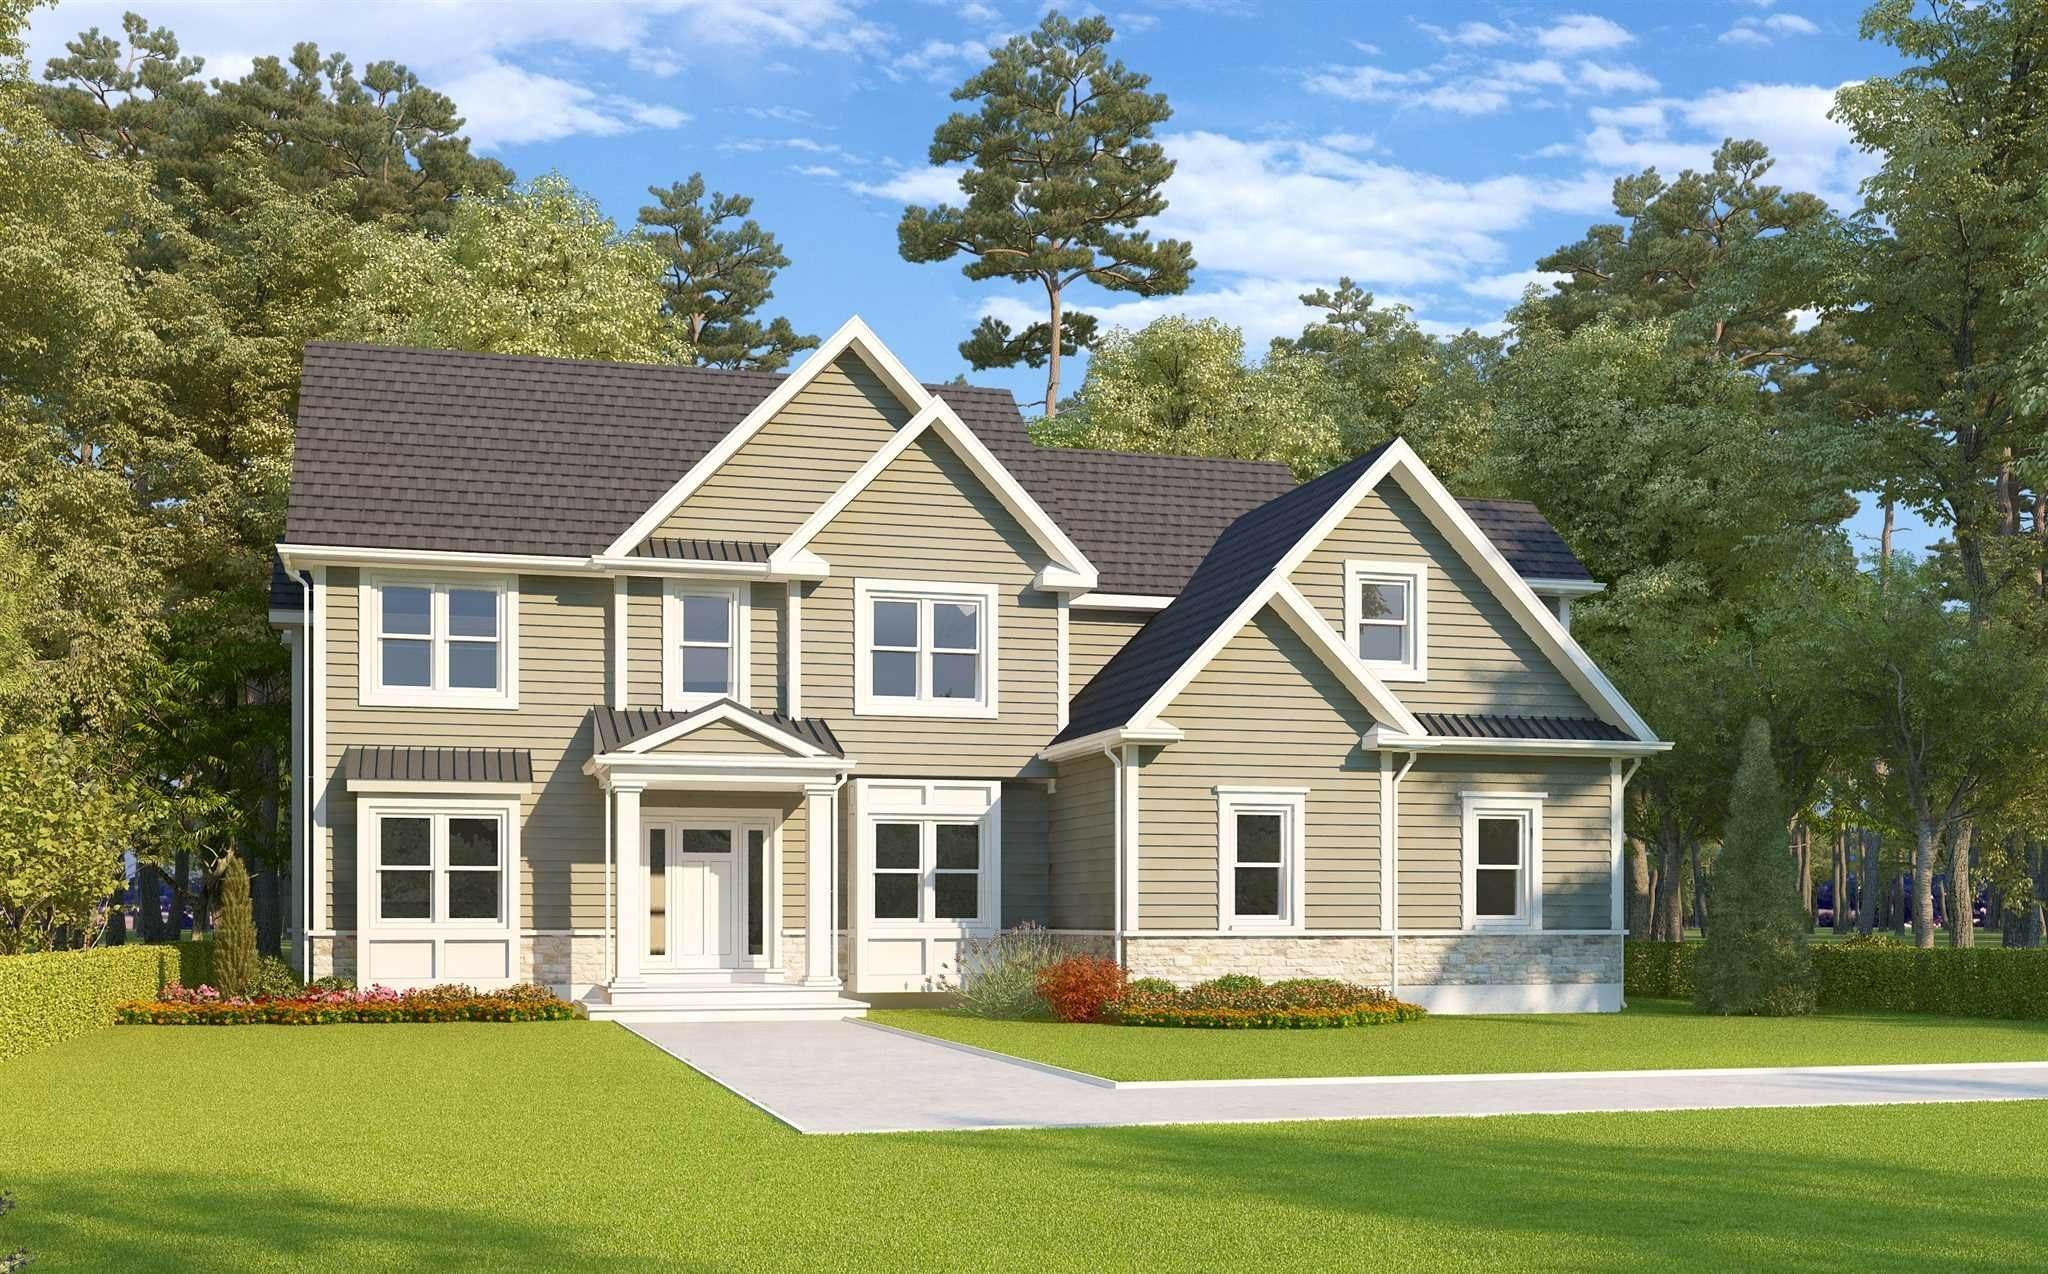 Single Family Homes for Sale at STONECREST LOT#8 Court Beekman, New York 12533 United States